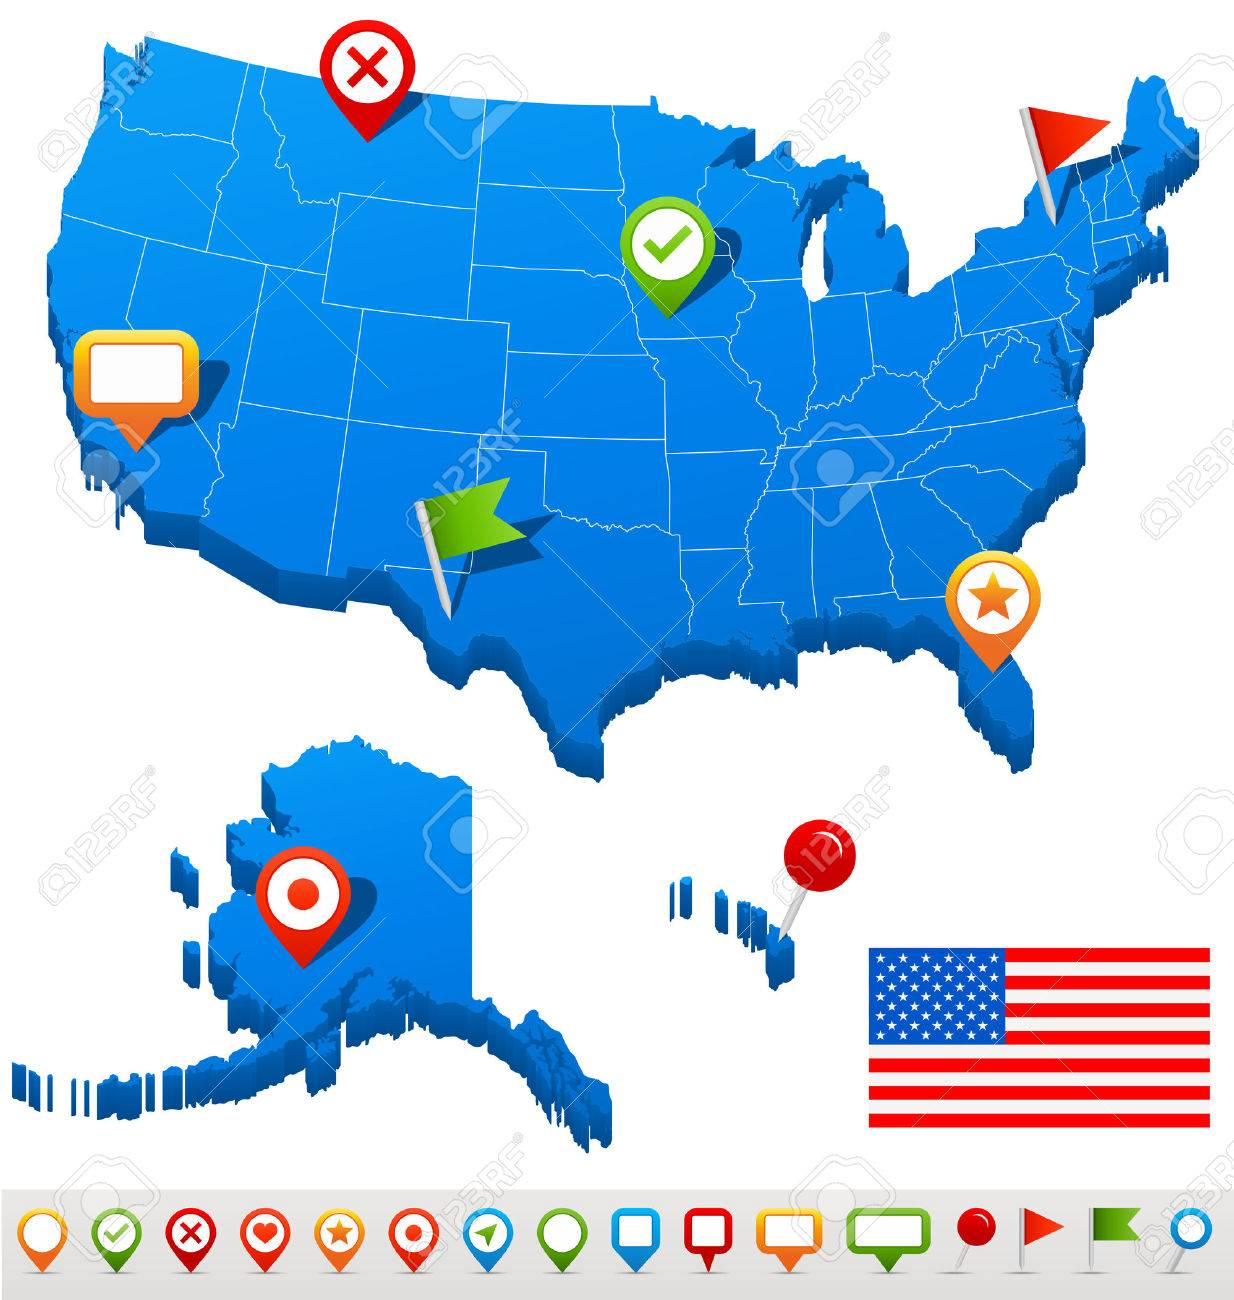 United States Of America USA Free Maps Free Blank Maps Free Usa - Free editable us map powerpoint template